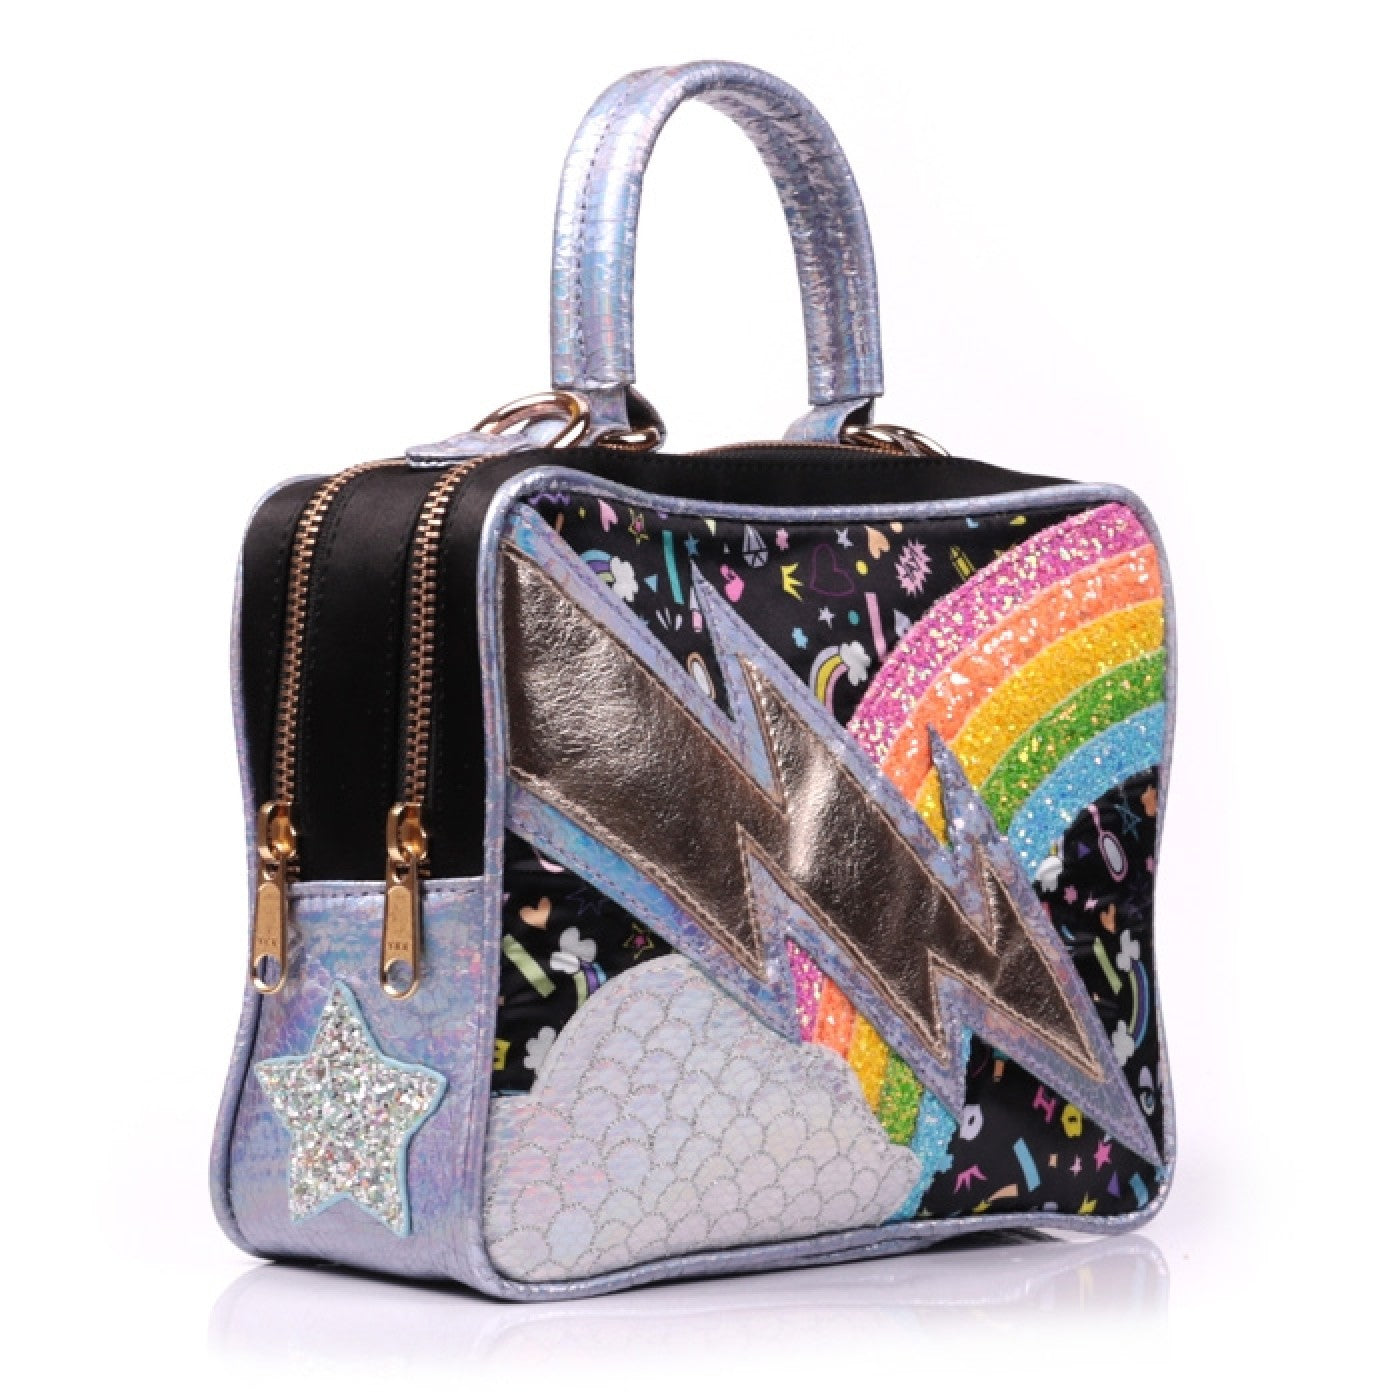 Rainbow Thunder Bag Black